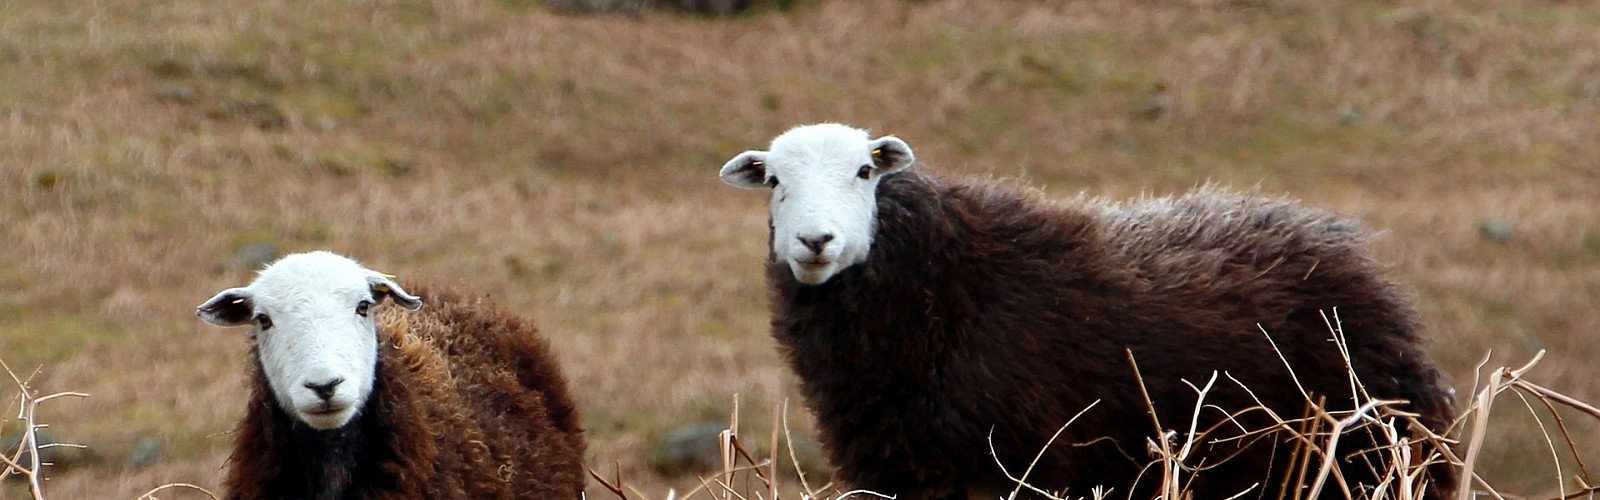 two herdwick sheep (image: John Perrett / Pixabay)